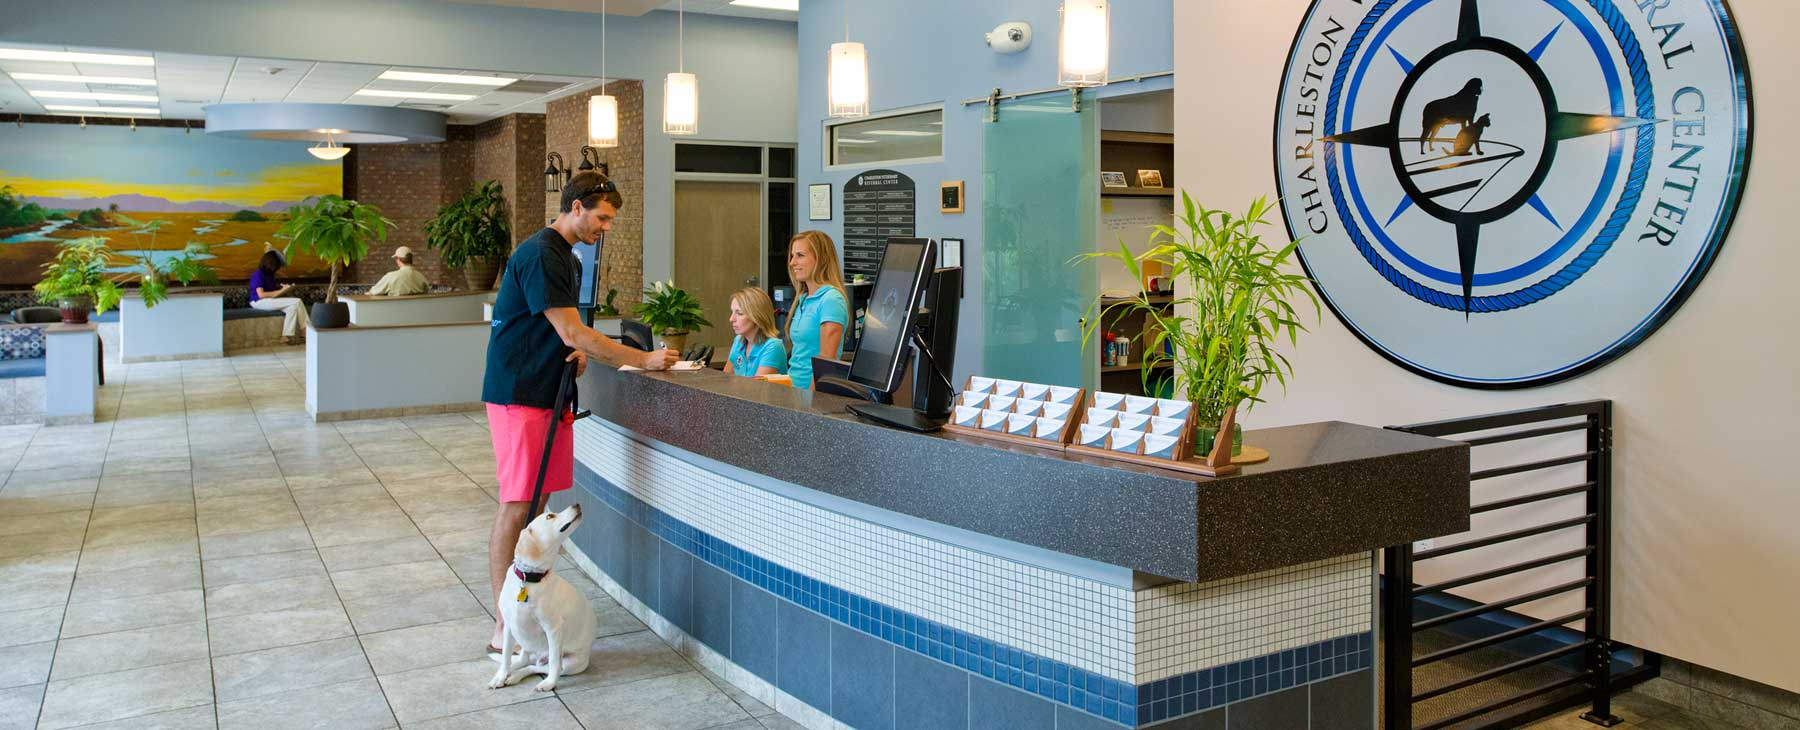 About Charleston Veterinary Referral Center in South Carolina